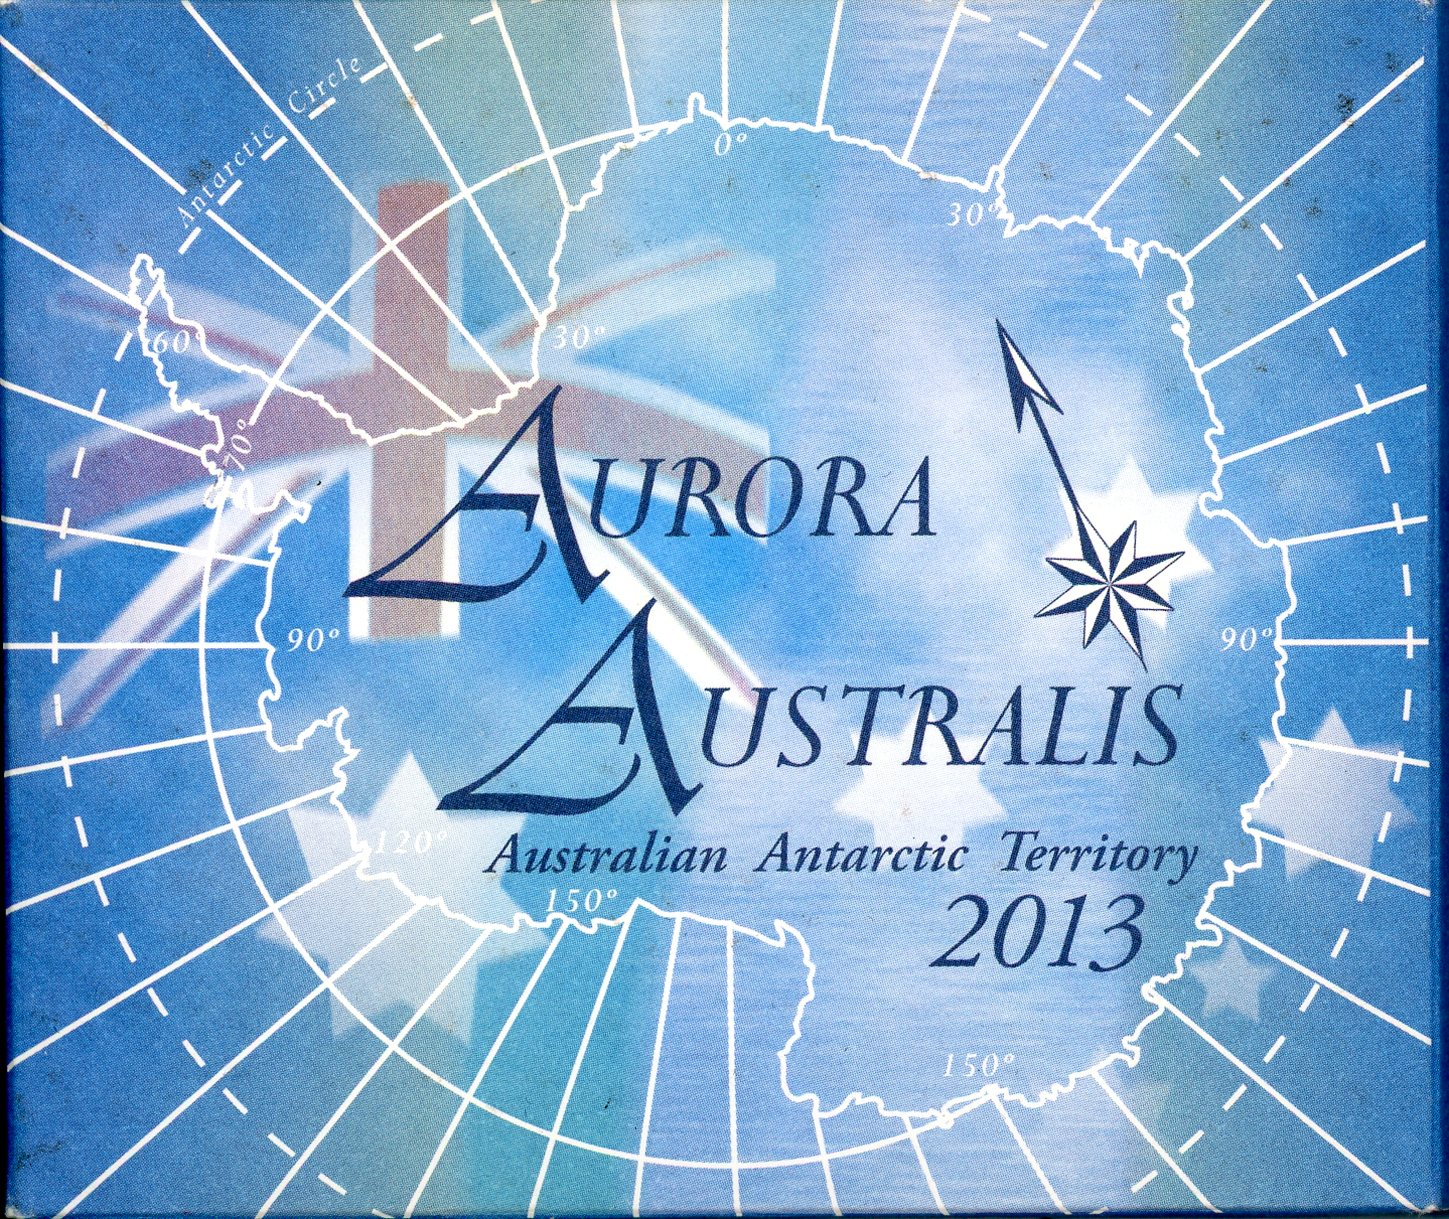 Thumbnail for 2013 Australian Antarctic Territory 1oz Coloured Silver Proof Coin - Aurora Australis